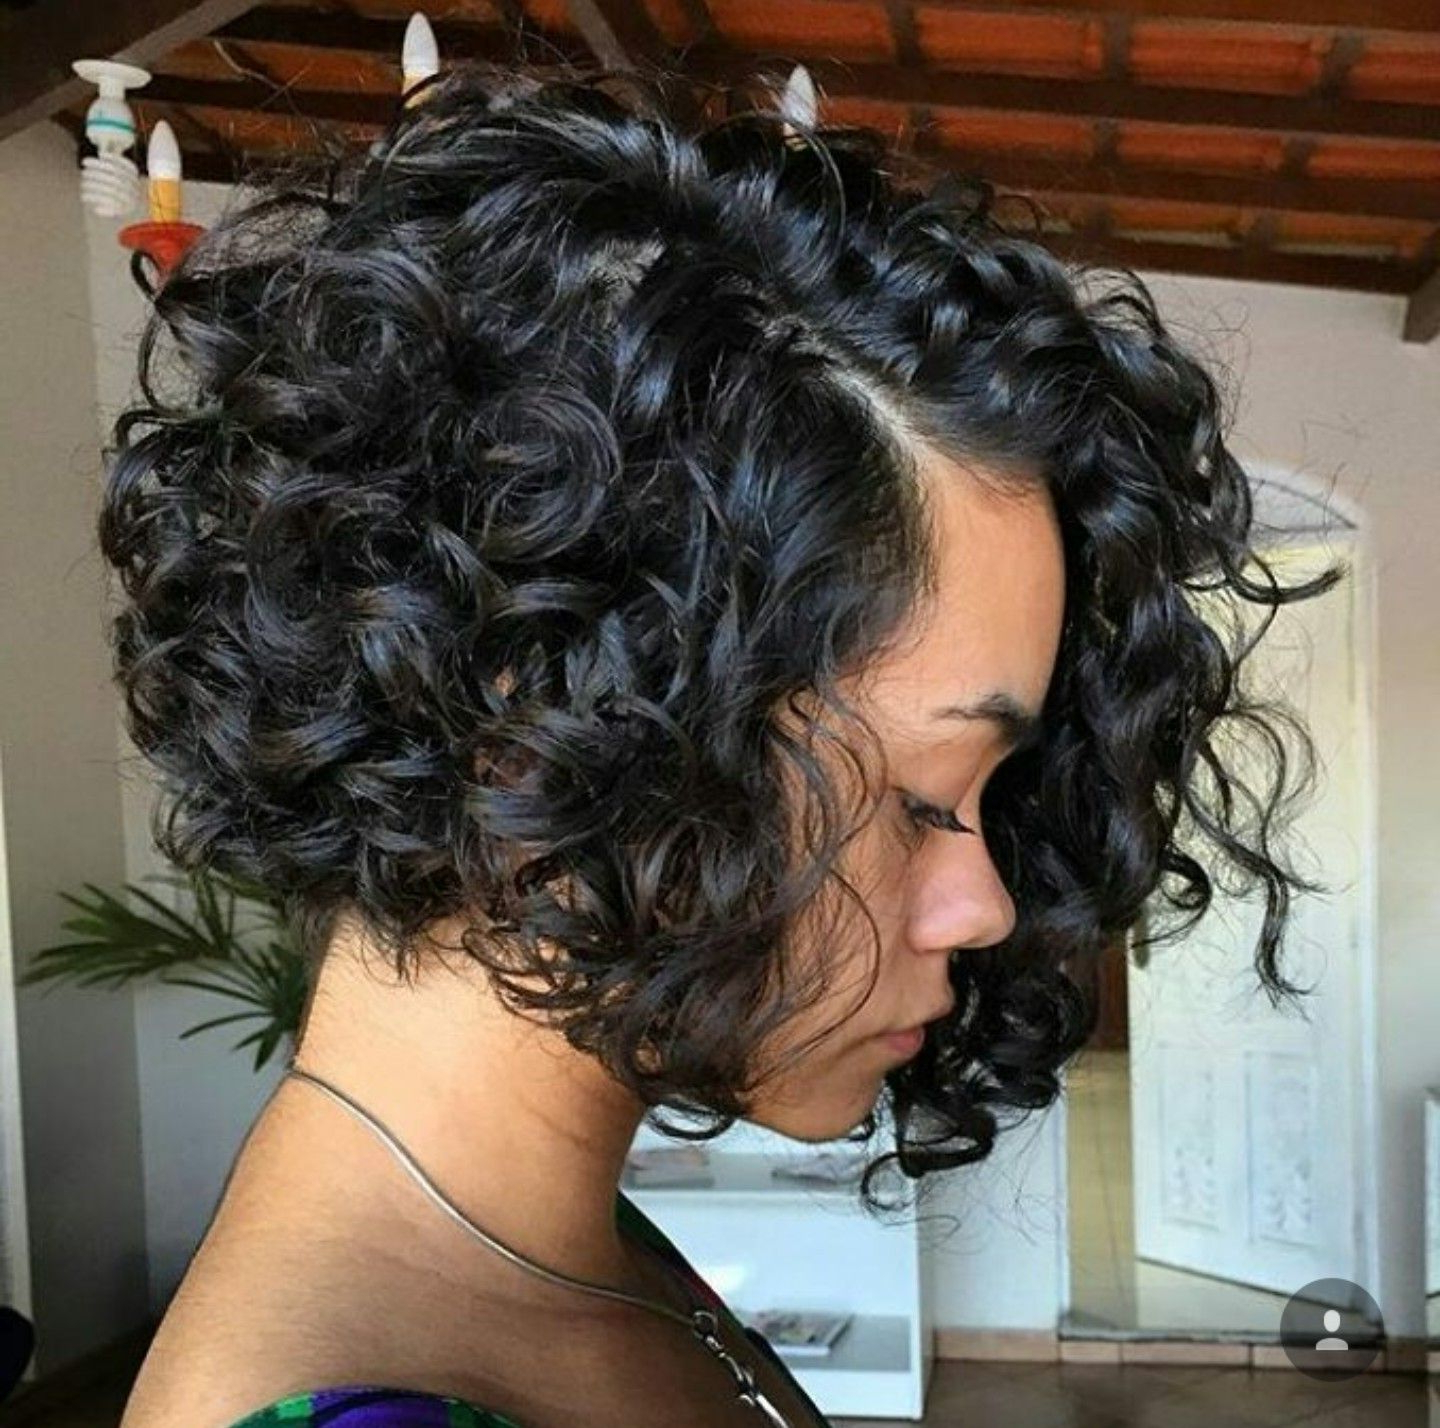 Curly Hair Styles, Hair Inspiration, Wig Hairstyles Inside Most Up To Date Permed Bob Hairstyles (View 5 of 20)